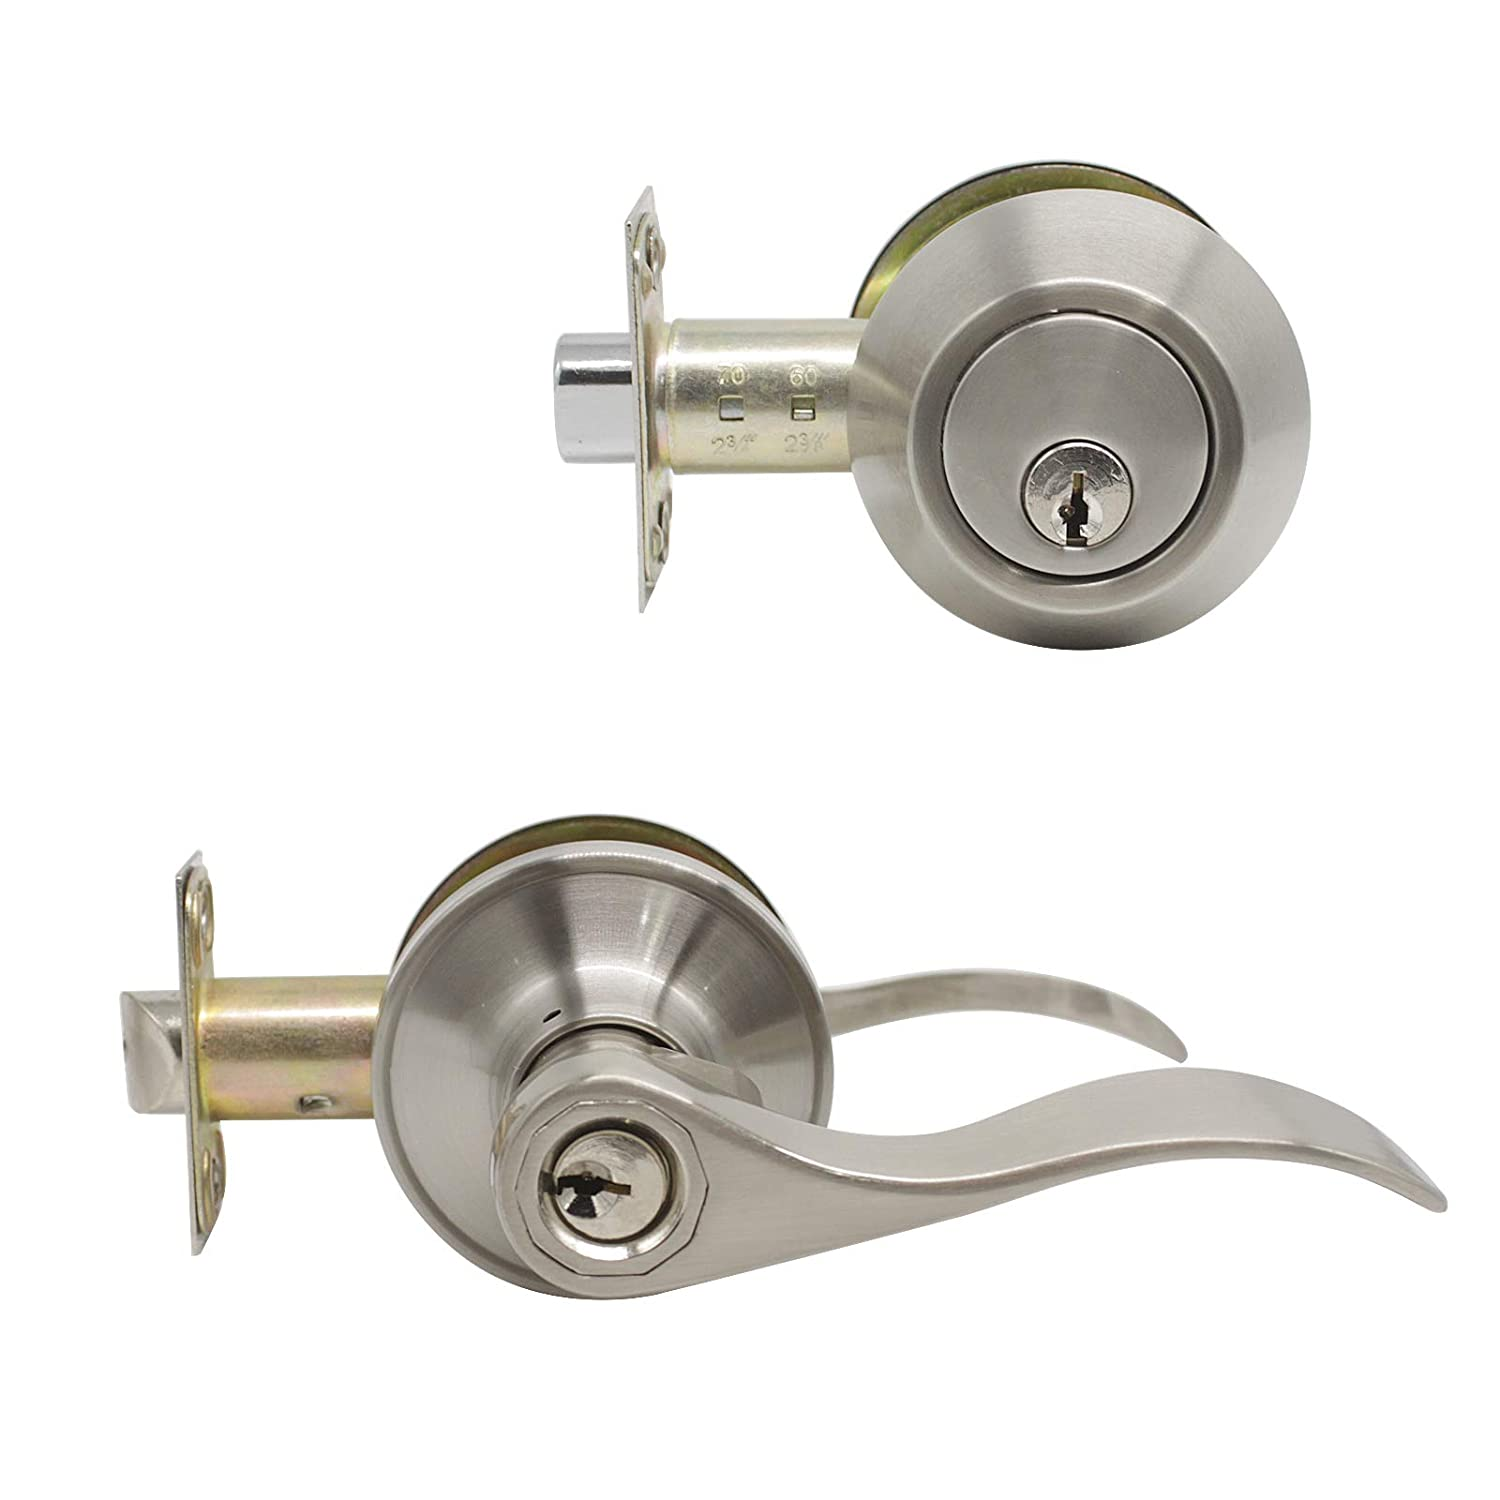 1 Set Entry Door Lever And Deadbolt Lock Set, Deadbolts Keyed Both Sides,  All Keyed Same, Wave Style Front And Exterior Door Handleset With Double  Cylinder, ...